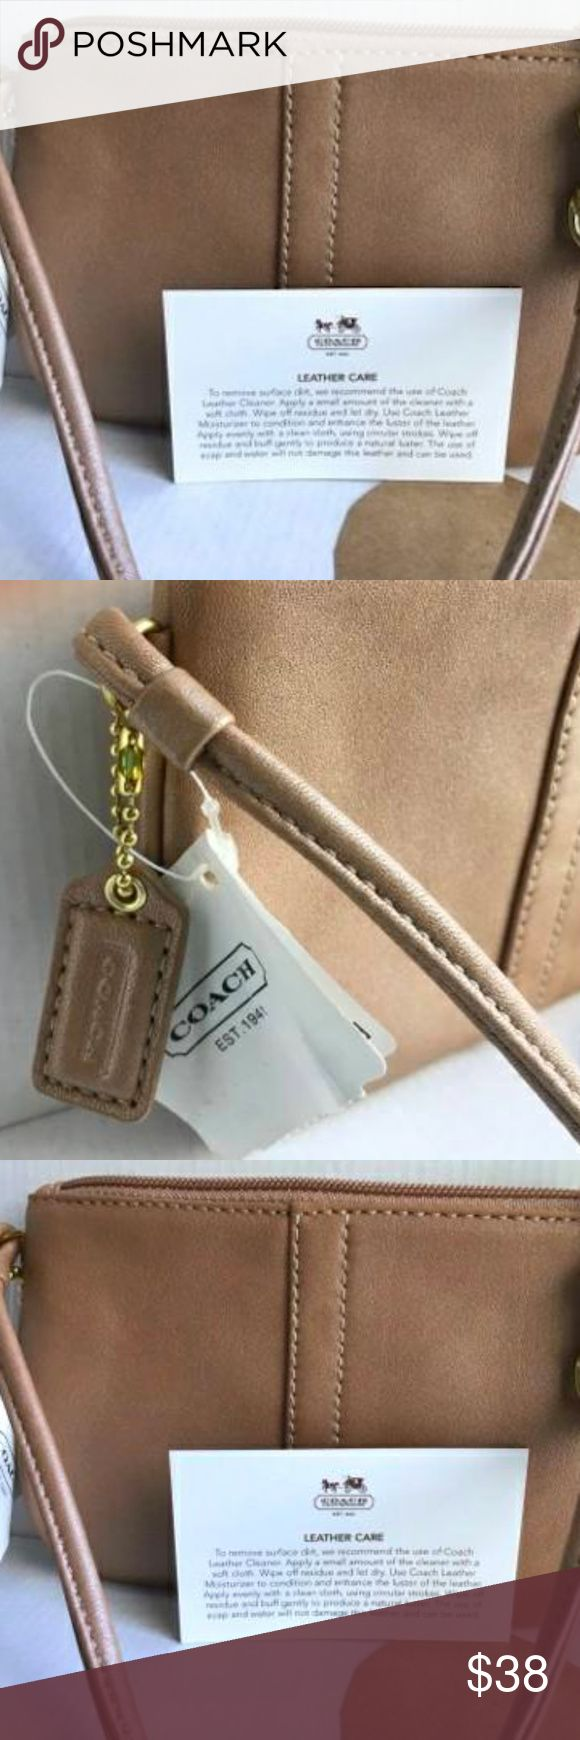 COACH Brand Wristlet Champagne Small Purse - NEW ★ New with Tags COACH Brand Wristlet Champagne - Leather F42389 (NEW) Authentic Coach Brand Women's Wristlet Small Purse  Champagne (Tan) Leather 4in x 7 in  Estimate  PLEASE READ AND REVIEW PHOTOS BEFORE PURCHASING - Happy Shopping! Coach Bags Clutches & Wristlets